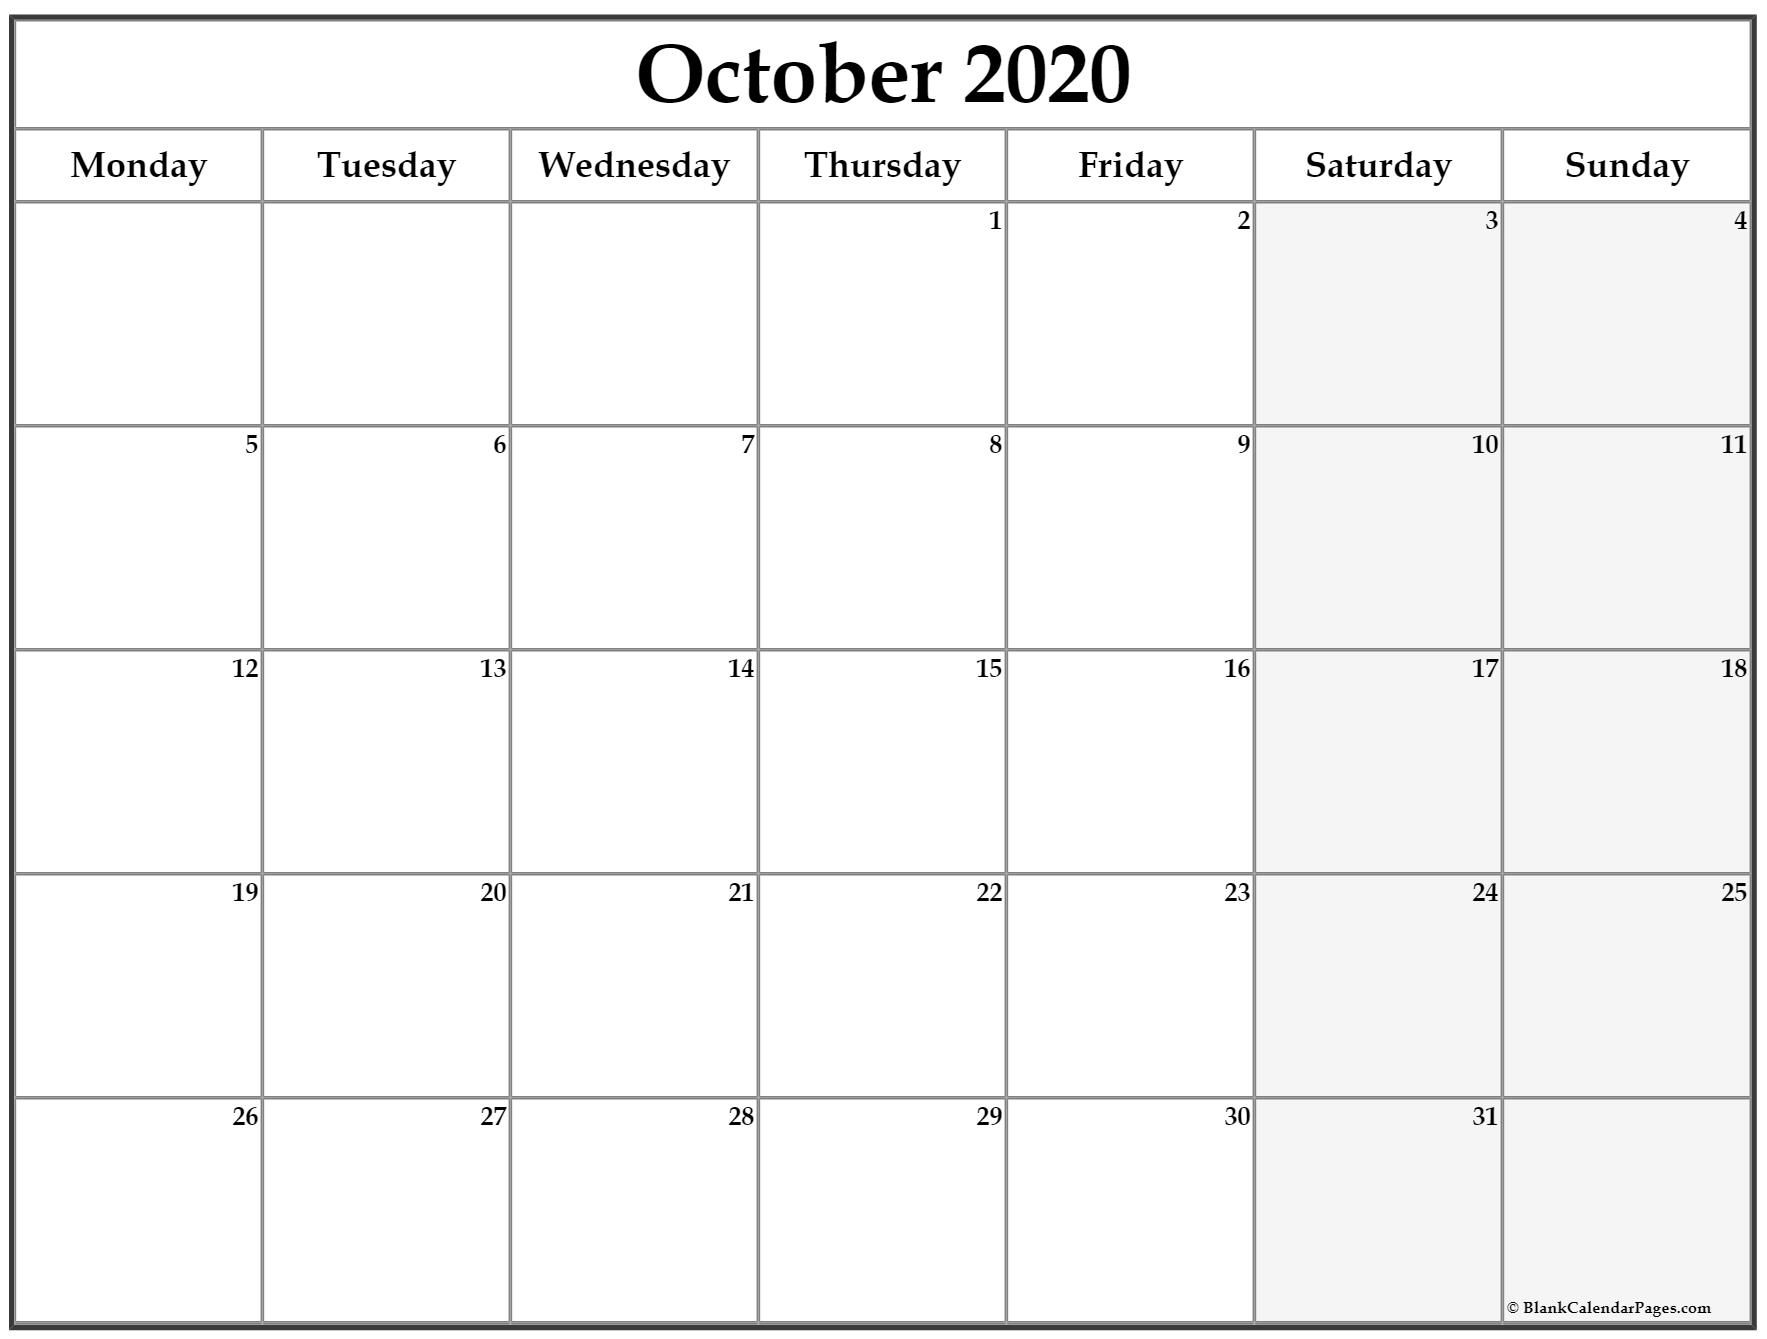 october 2020 monday calendar | monday to sunday